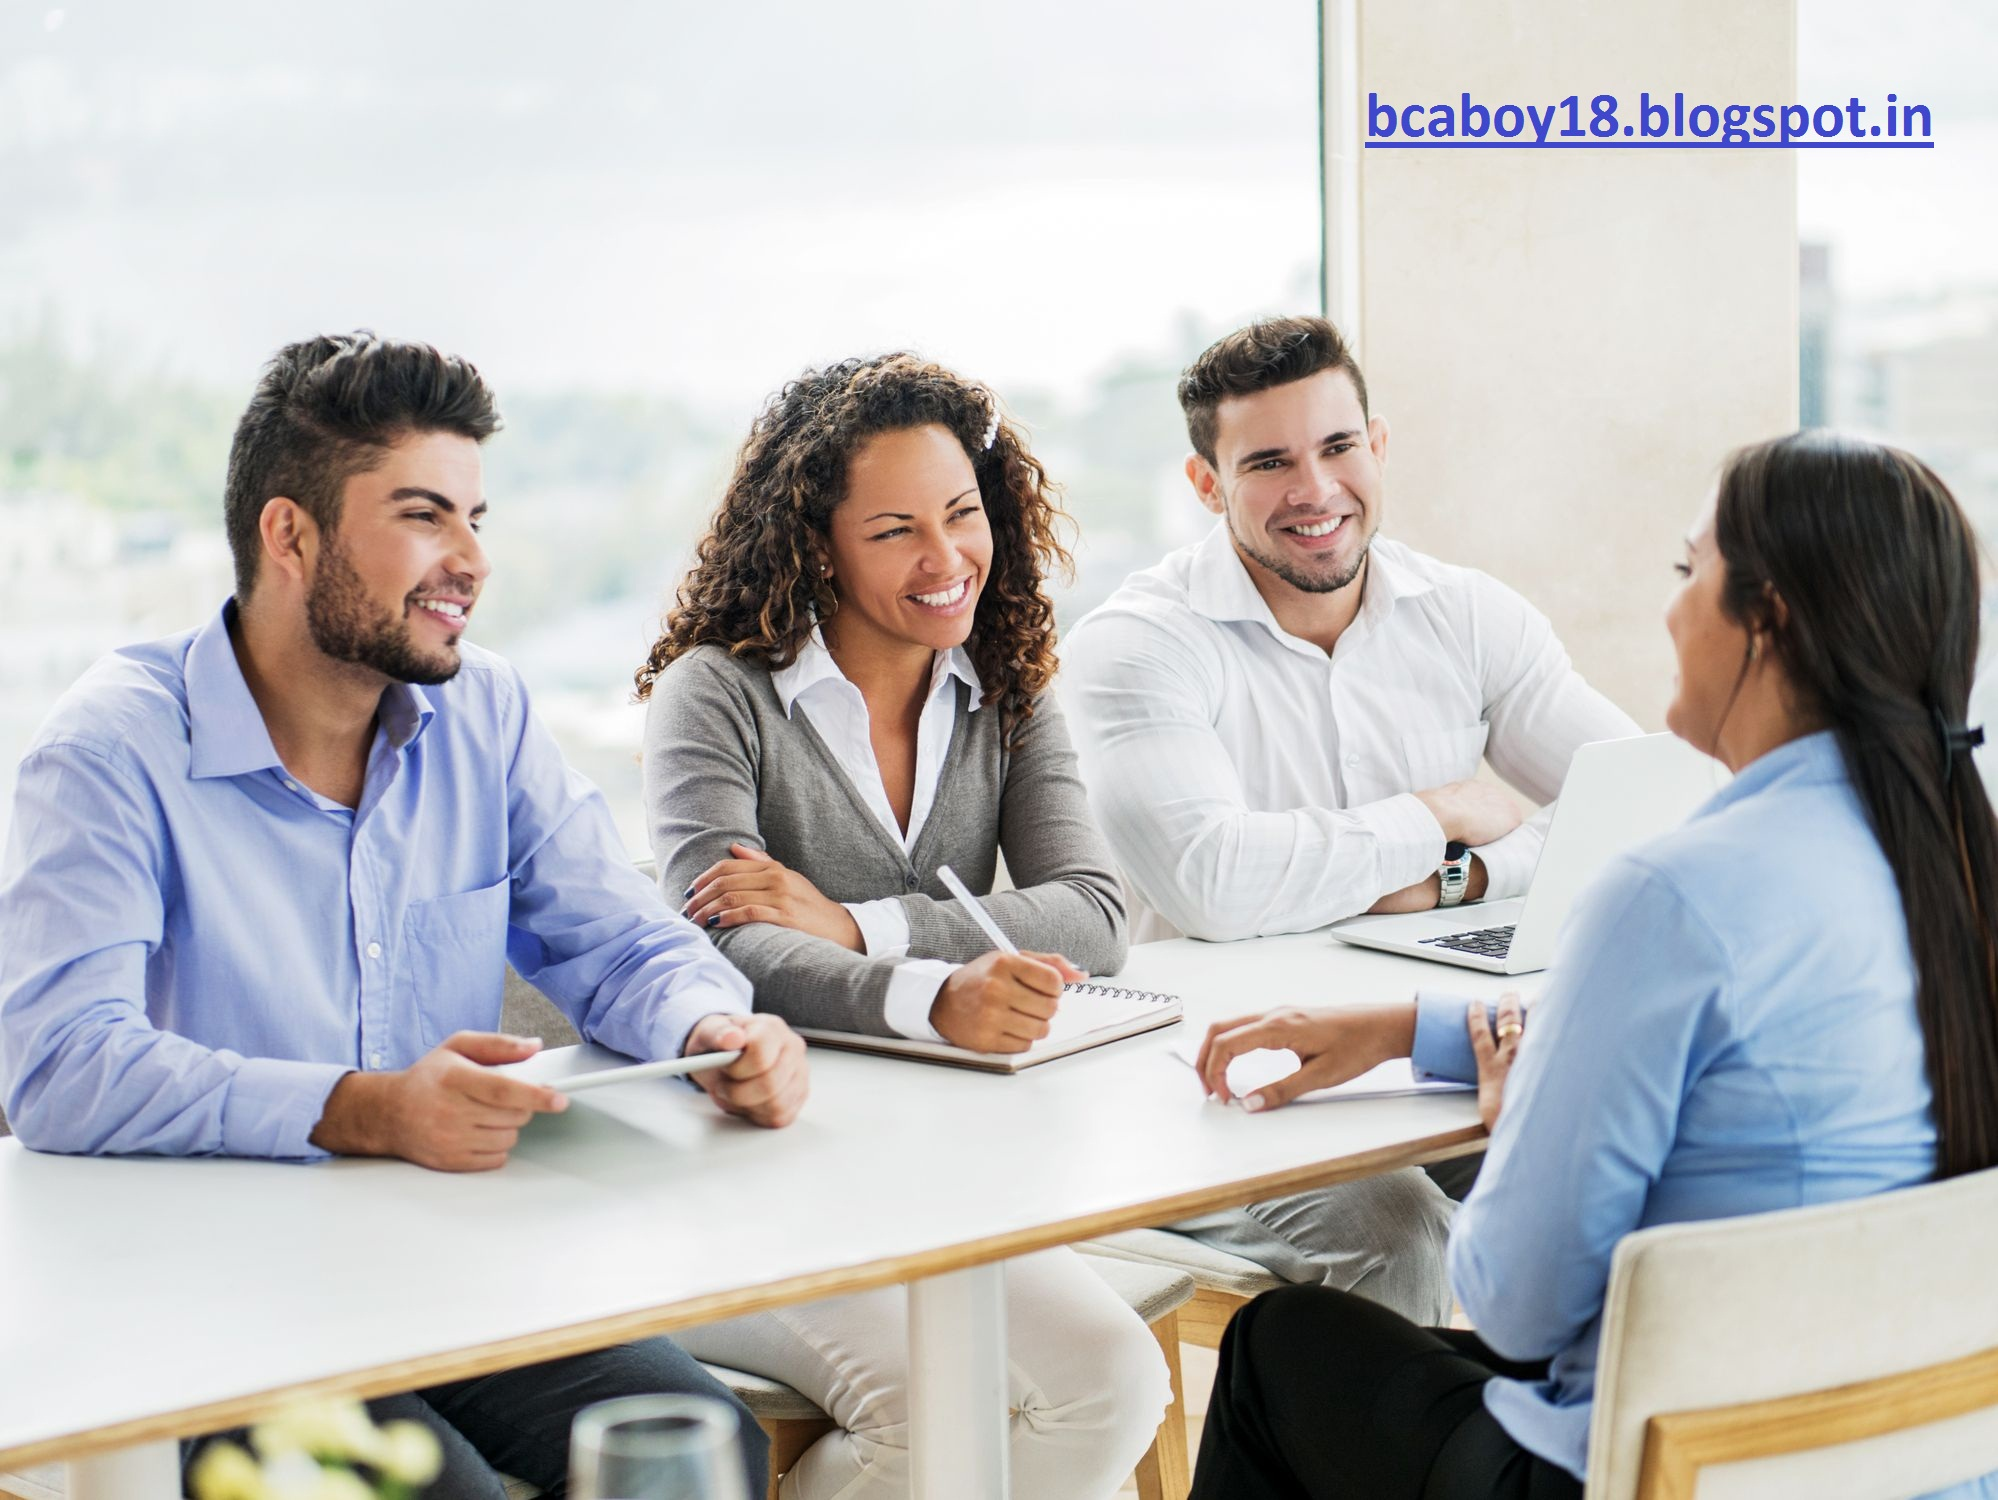 Some-common-questions-ask-in-interview, What's-questions-ask-in-Interview